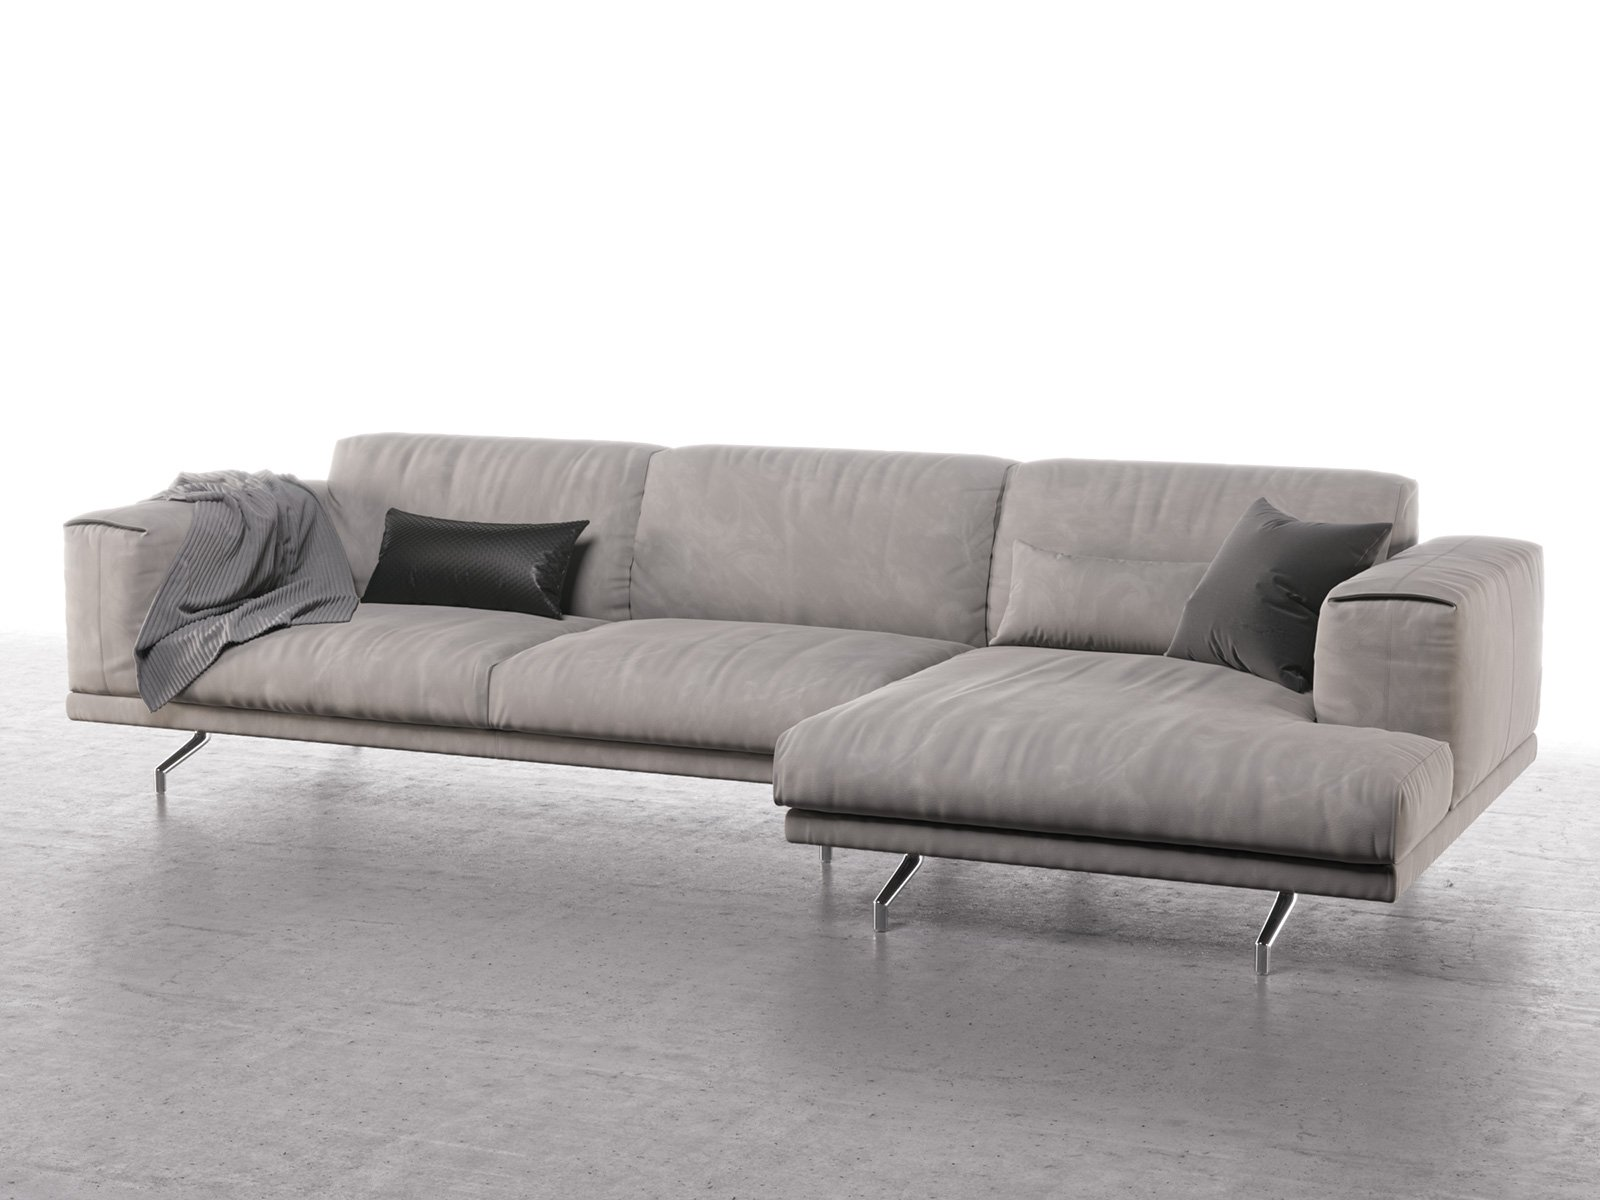 sofa 3d models, poldo 3d model